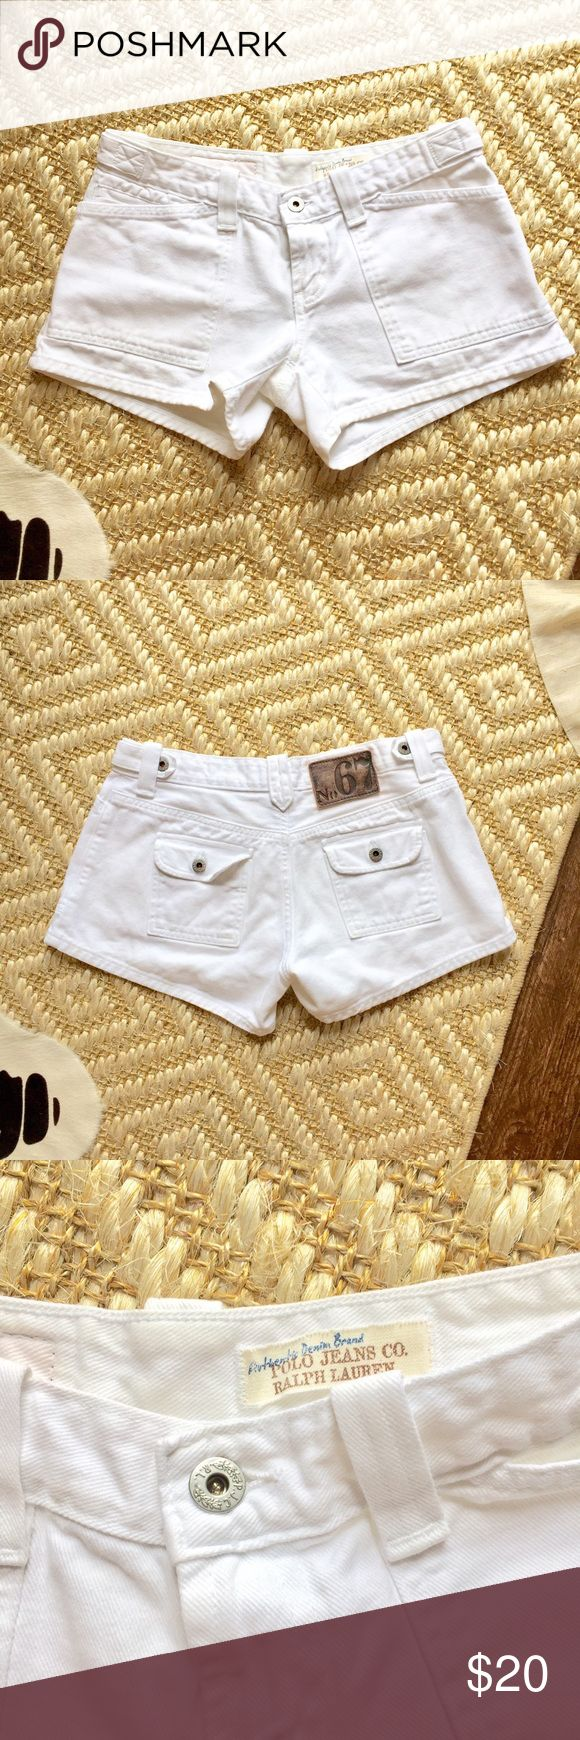 Polo Ralph Lauren Whitney Multipocket Denim Shorts Love these white denim shorts! Super flattering cut. Gently used. Size 4. Polo by Ralph Lauren Shorts